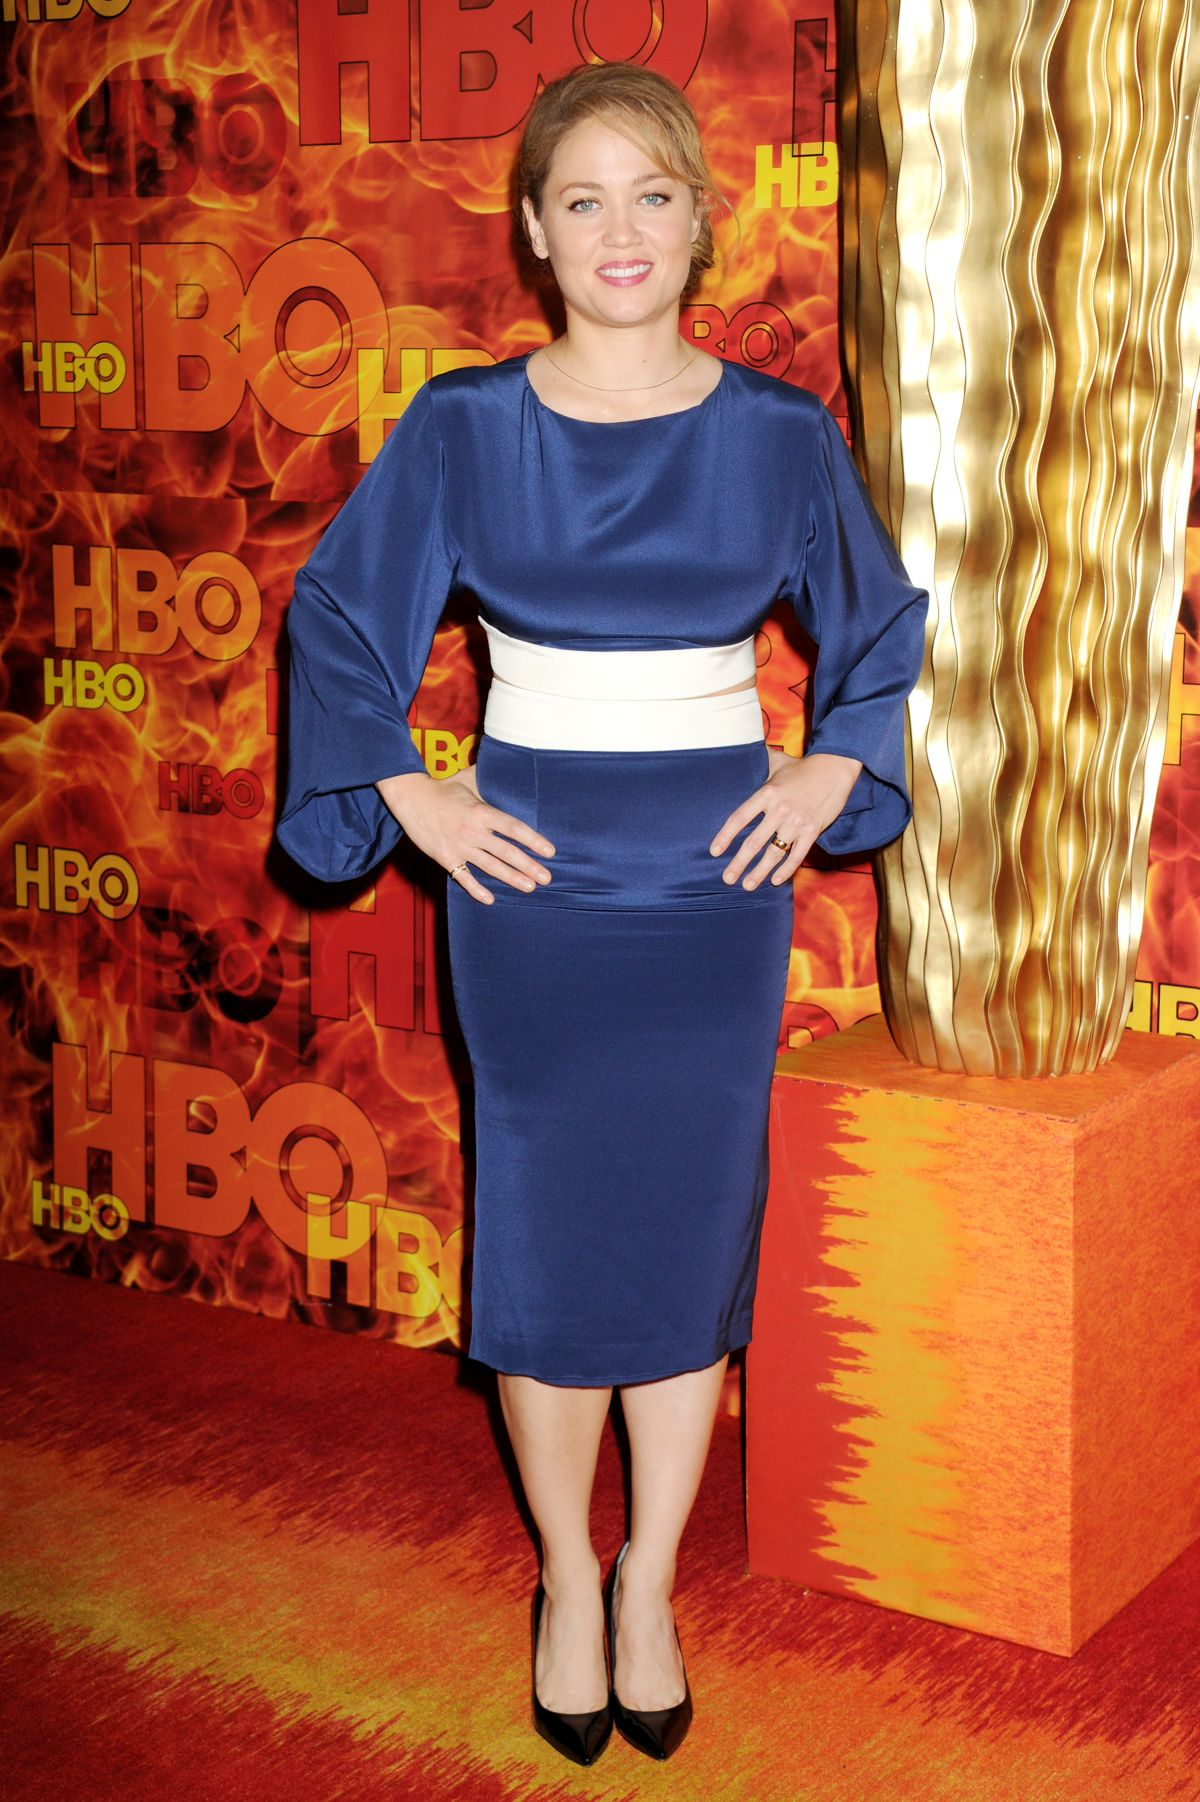 ERIKA CHRISTENSEN at HBO's Official 2015 Emmy After-party in Los Angeles 09/20/2015